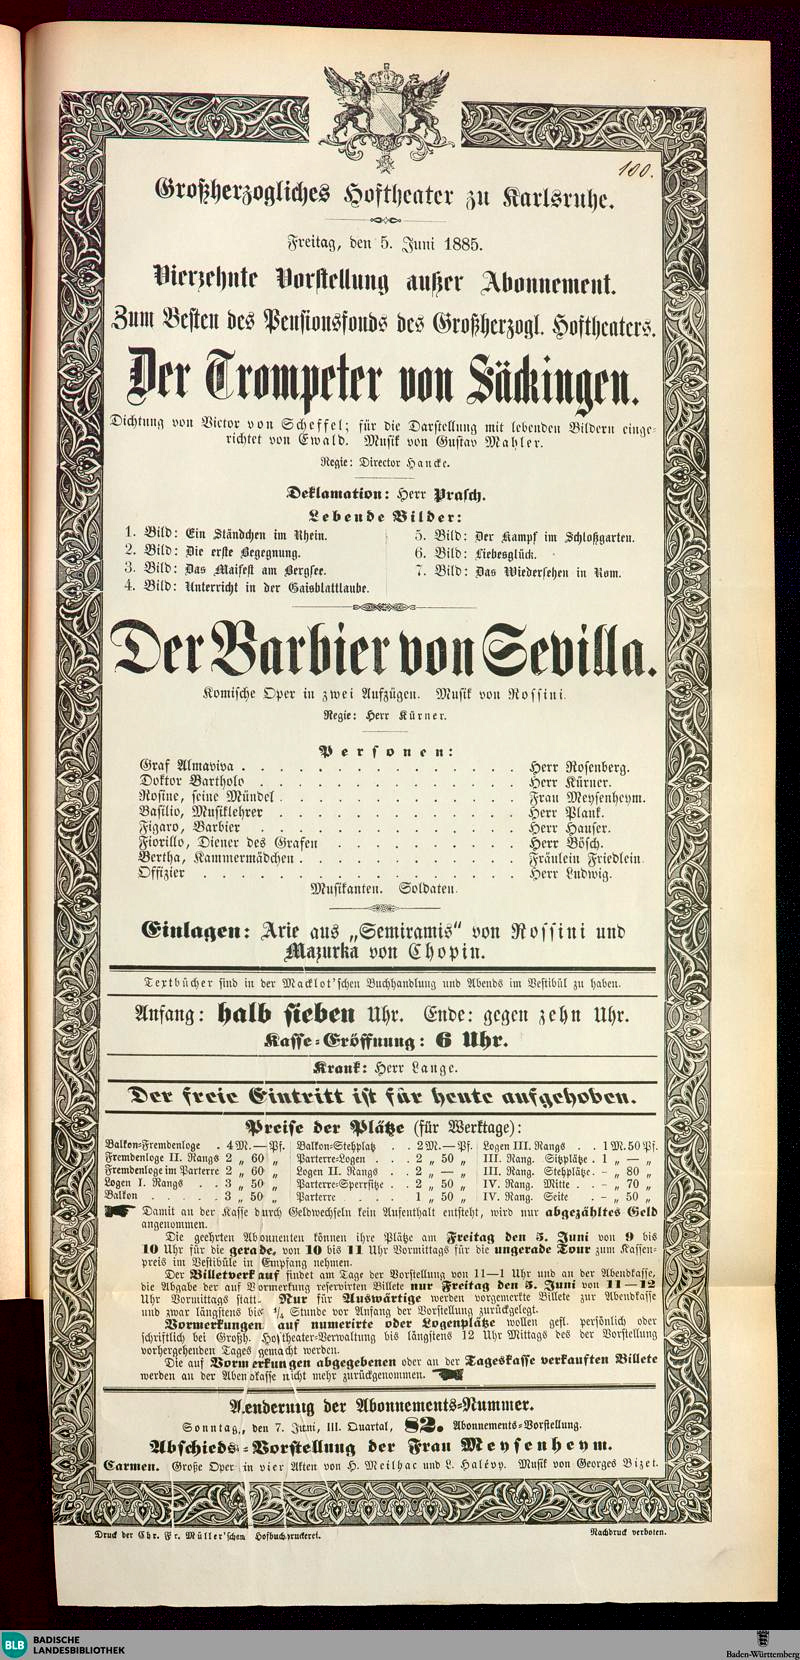 Colour facsimile of the handbill for the benefit performance at the Großherzogliches Hoftheater zu Karlsruhe, on 4 June 1885